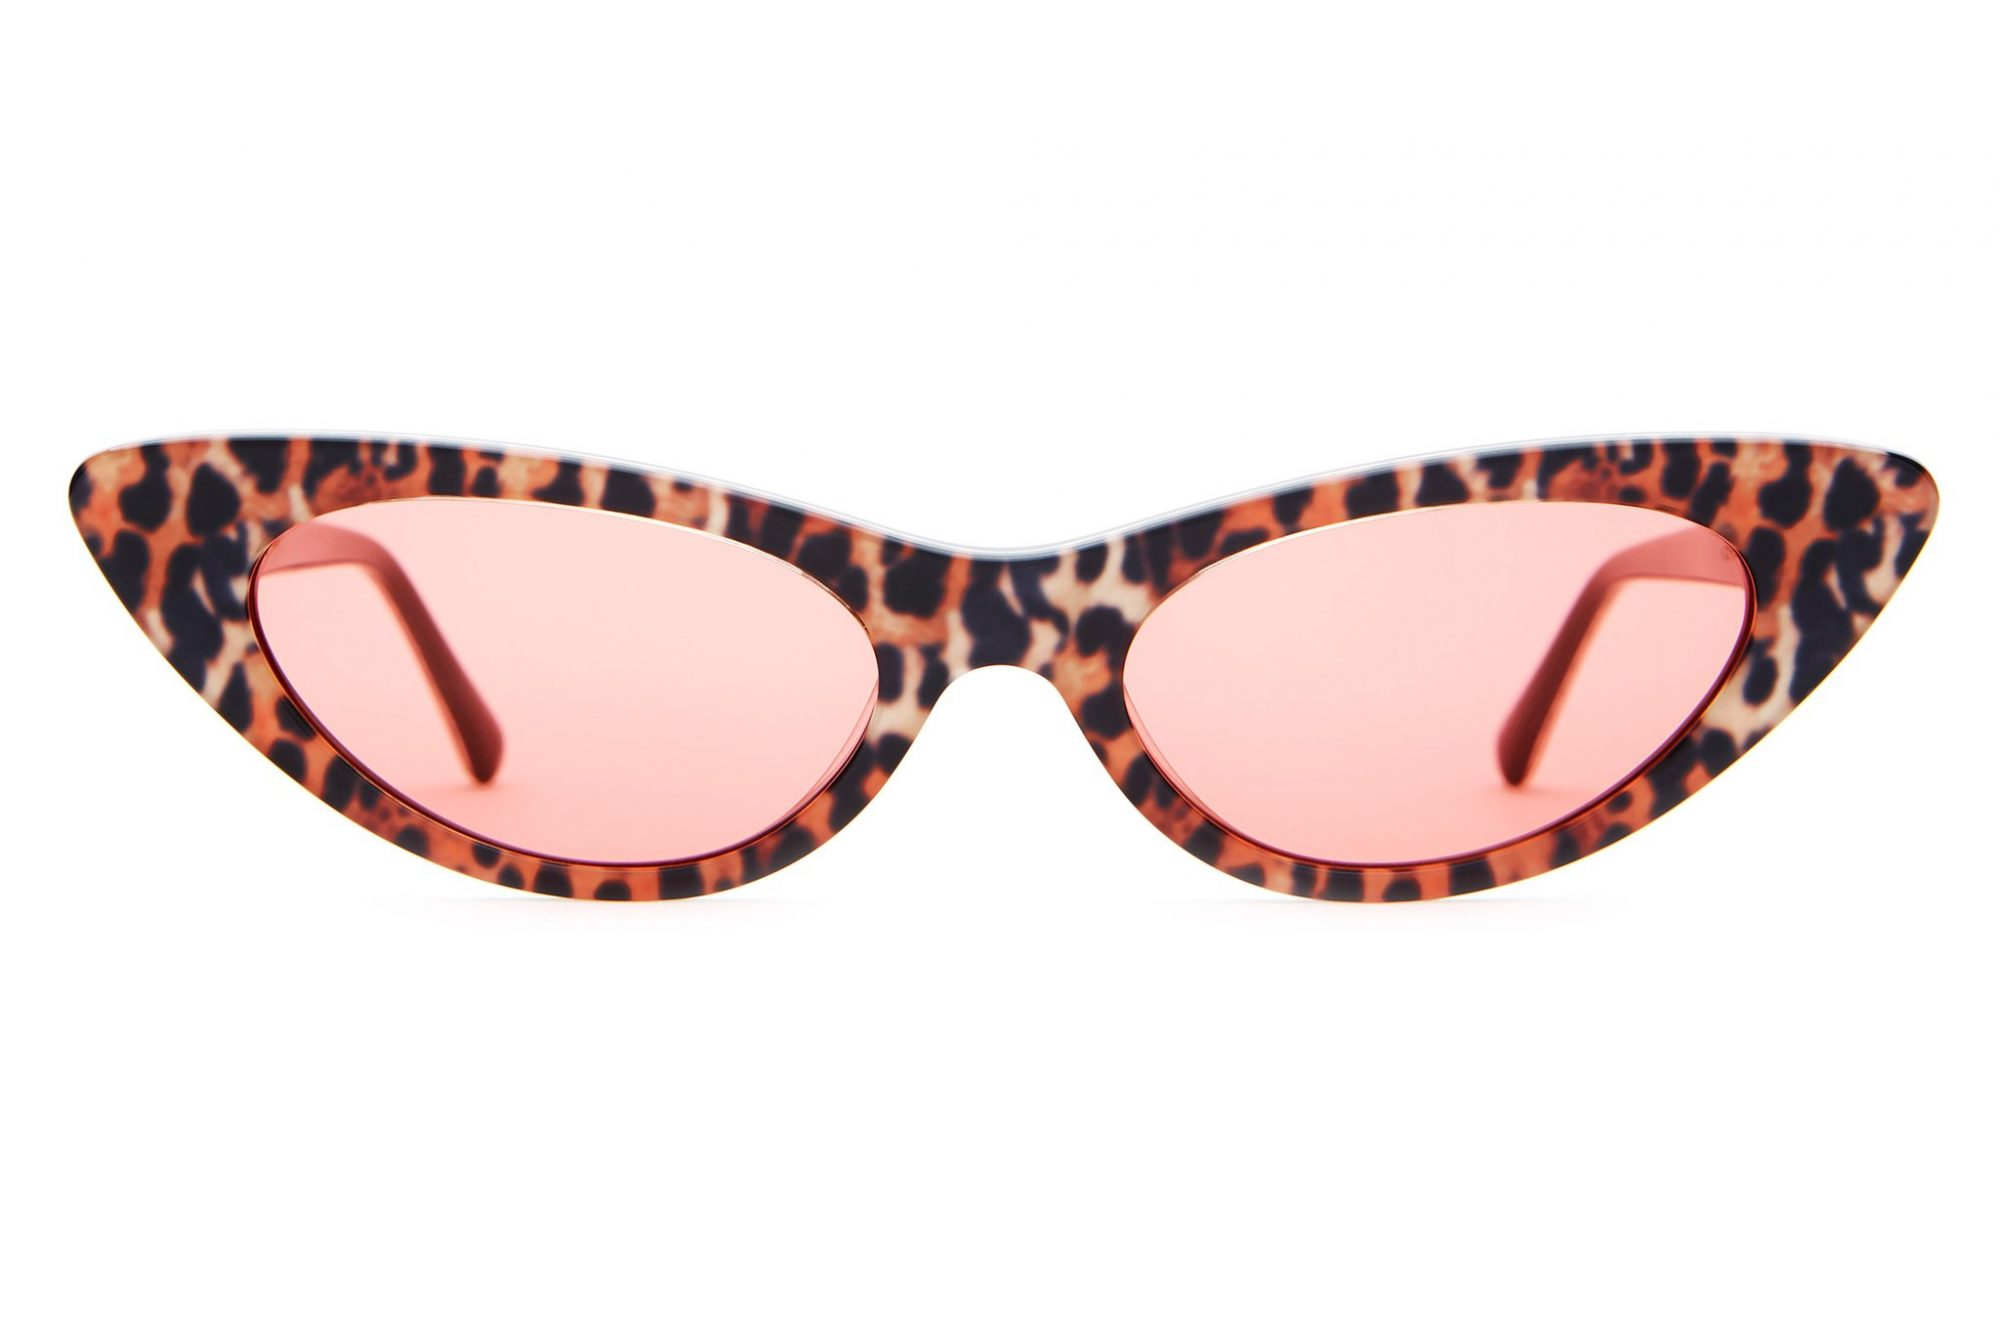 Crap_Eyewear-The_Ultra_Jungle-Leopard_Acetate_Thin_Cat-Eye_Sunglasses-Cherry_Red_Tint_Lens1